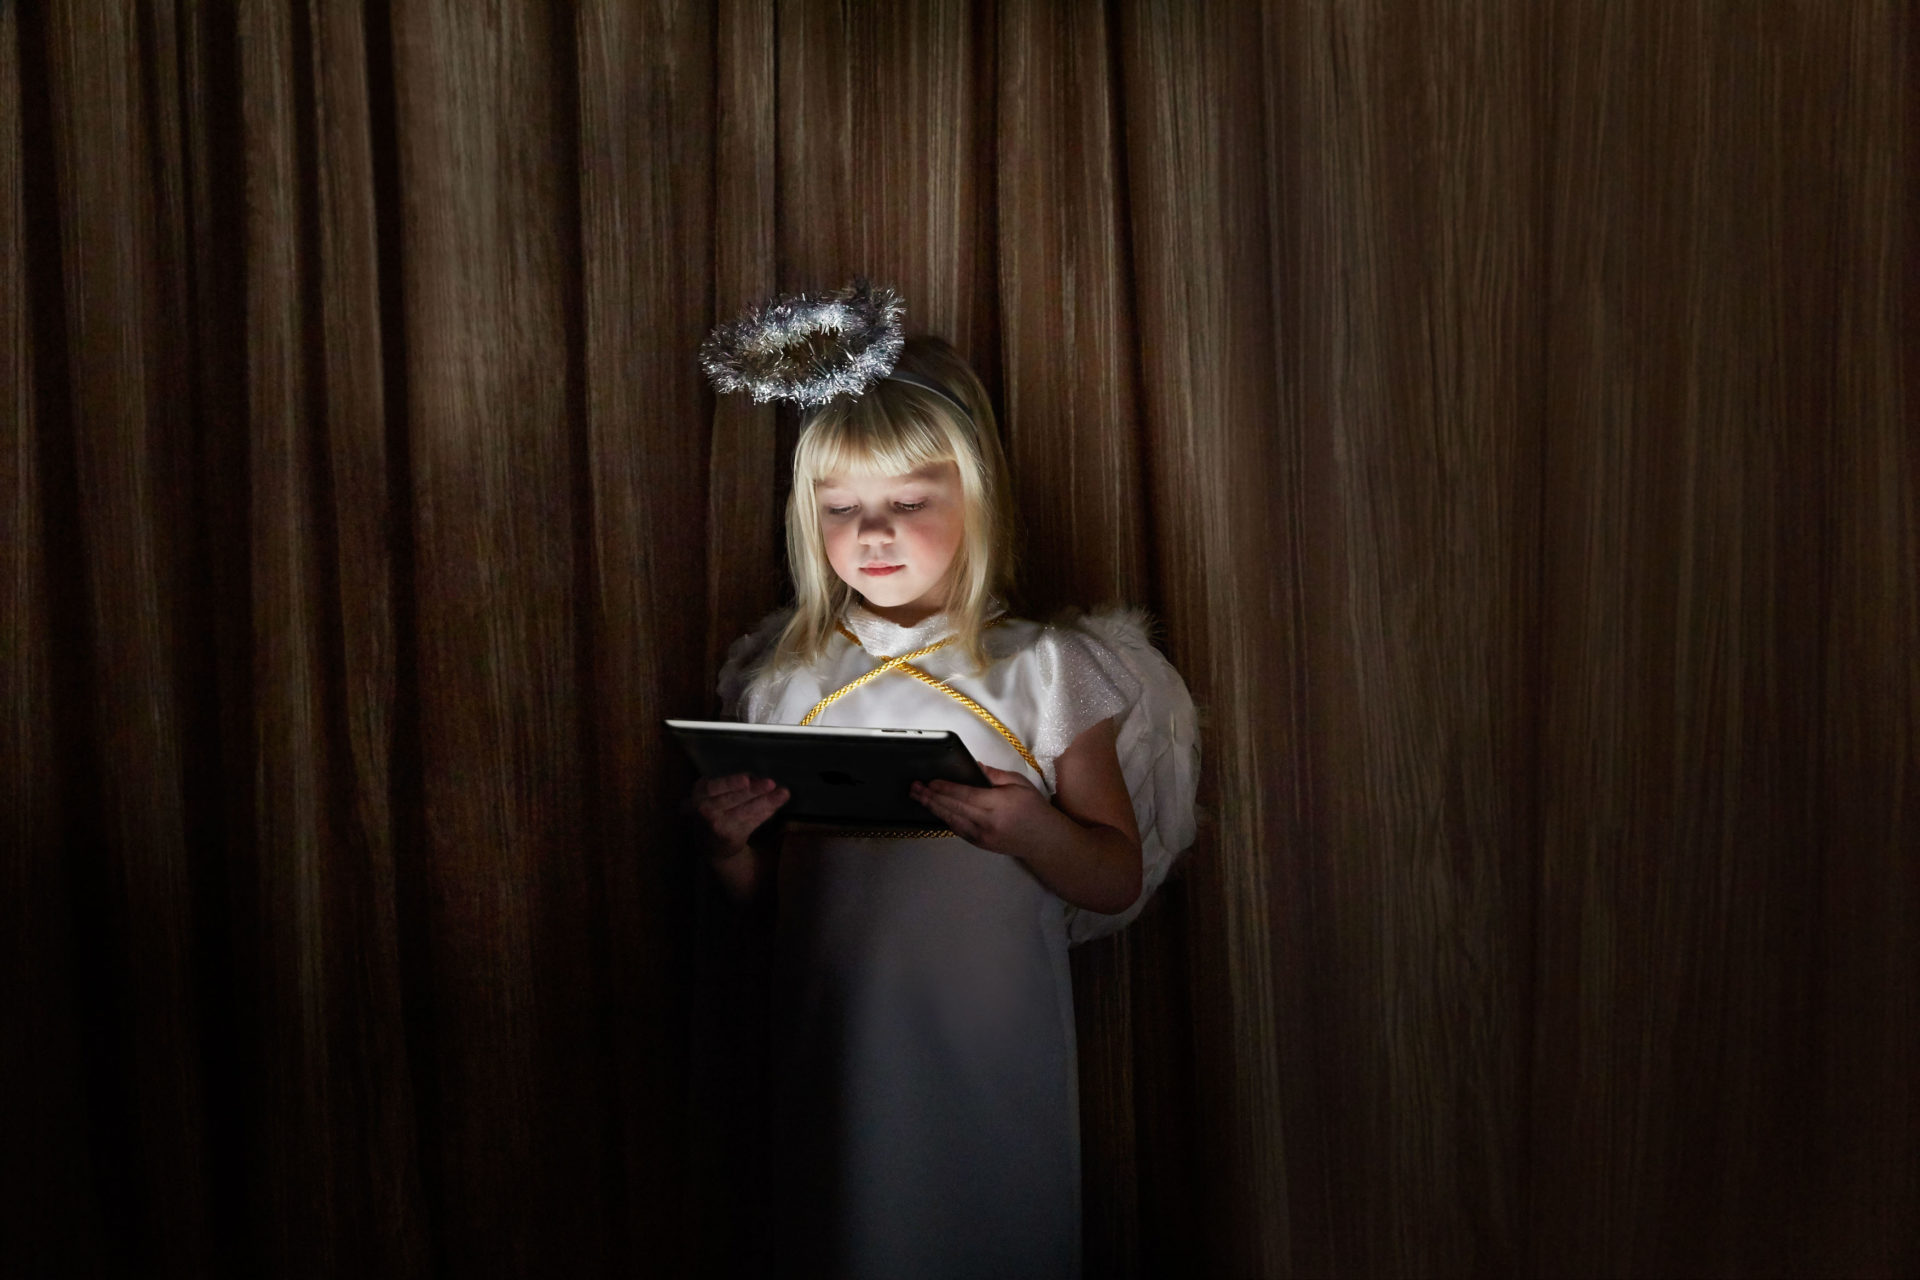 – Shaw & Shaw Photography – Shaw and Shaw Photographers Manchester – advertising photographers – graphic image – Nativity Angel – girl dressed as an angel looking at an iPad – Christmas play – Nativity play